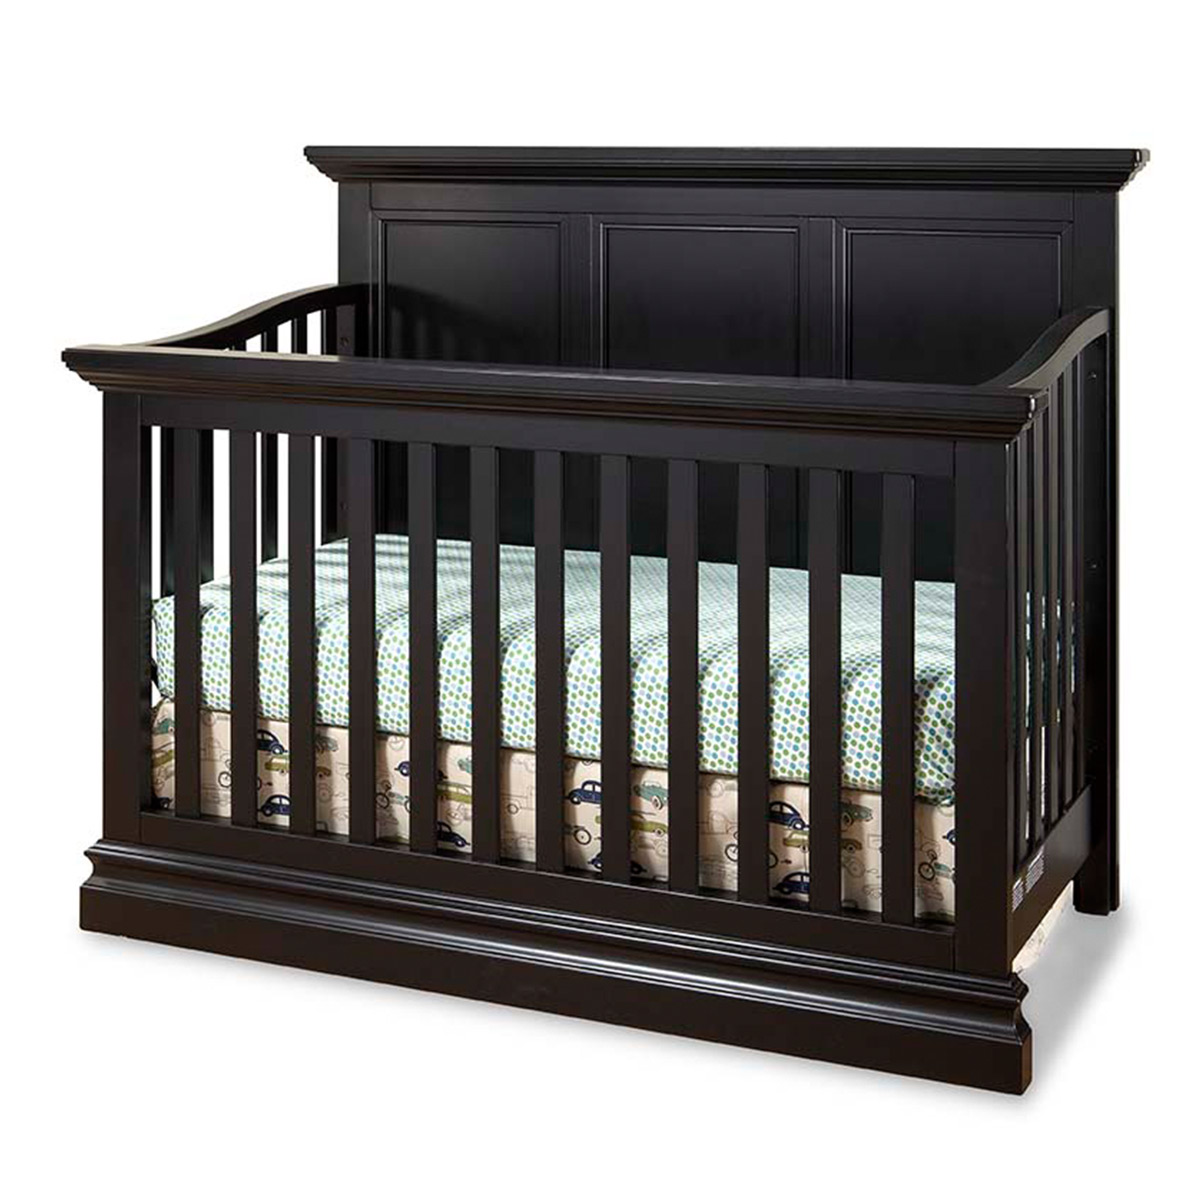 Westwood Design Pine Ridge 2 Piece Nursery Set Convertible Panel Crib And 7 Drawer Dresser In Black Free Shipping